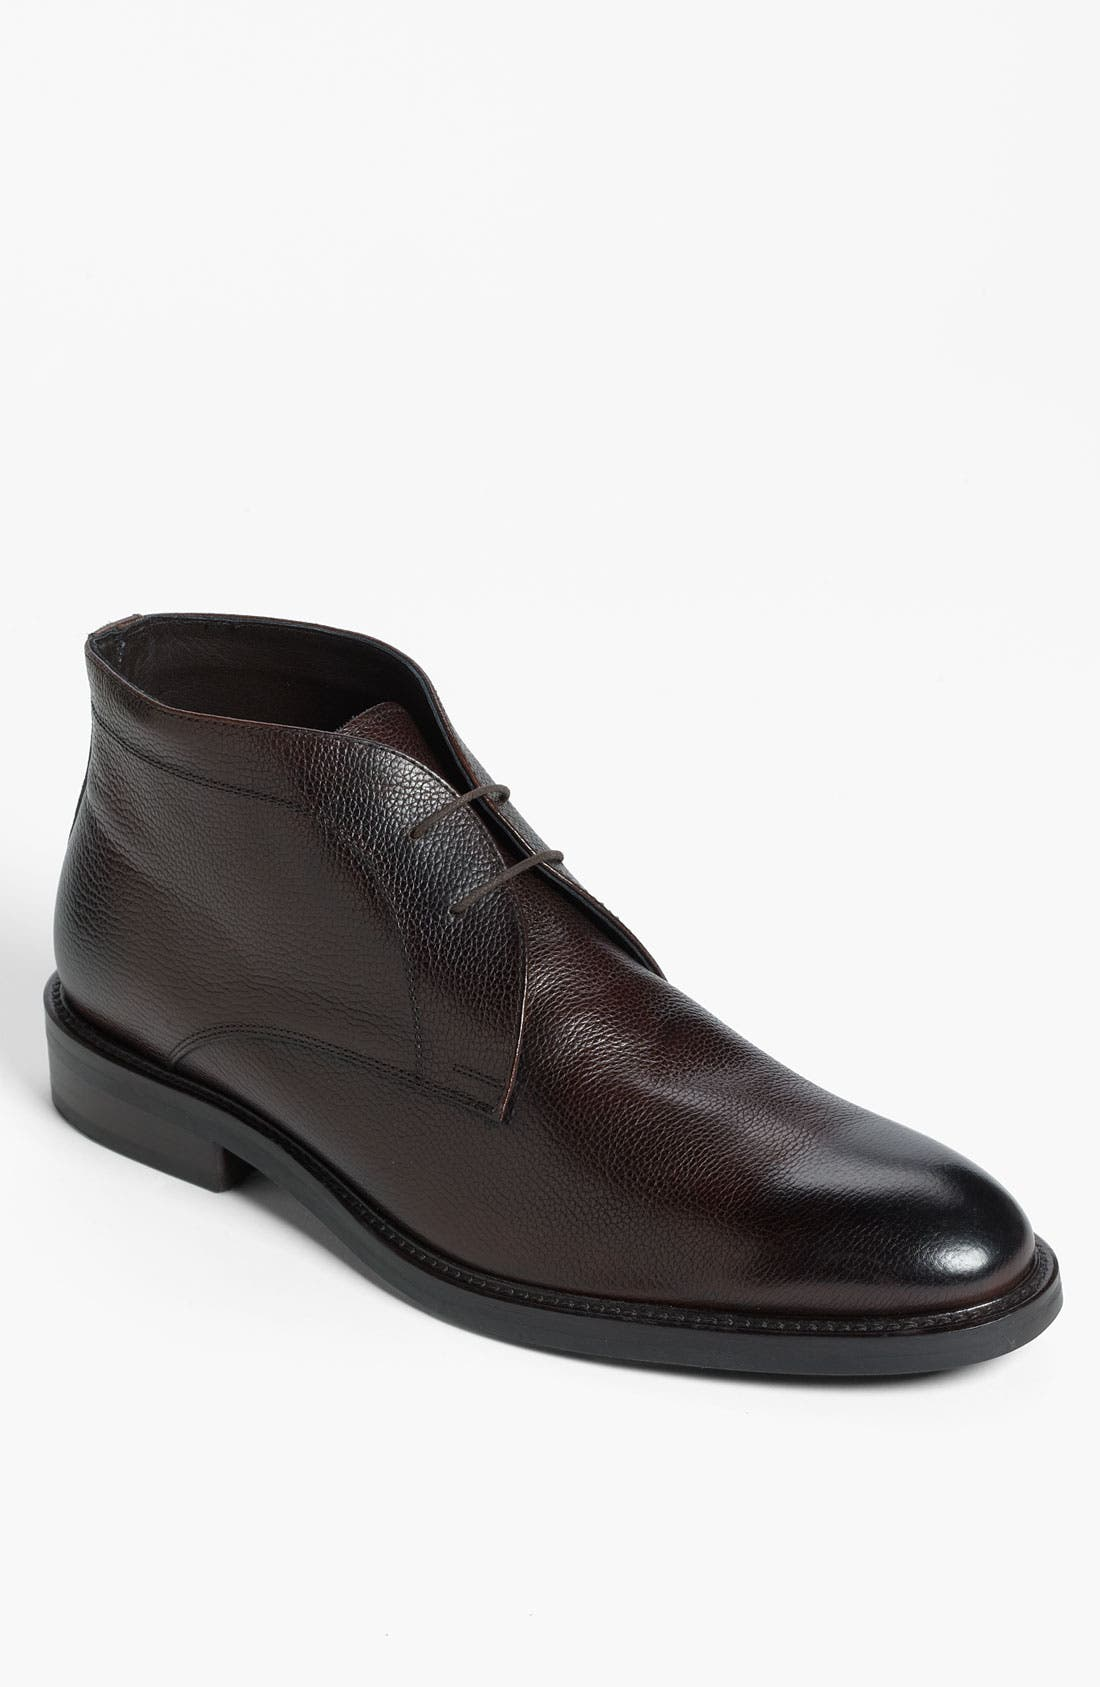 Alternate Image 1 Selected - To Boot New York 'Easton' Chukka Boot